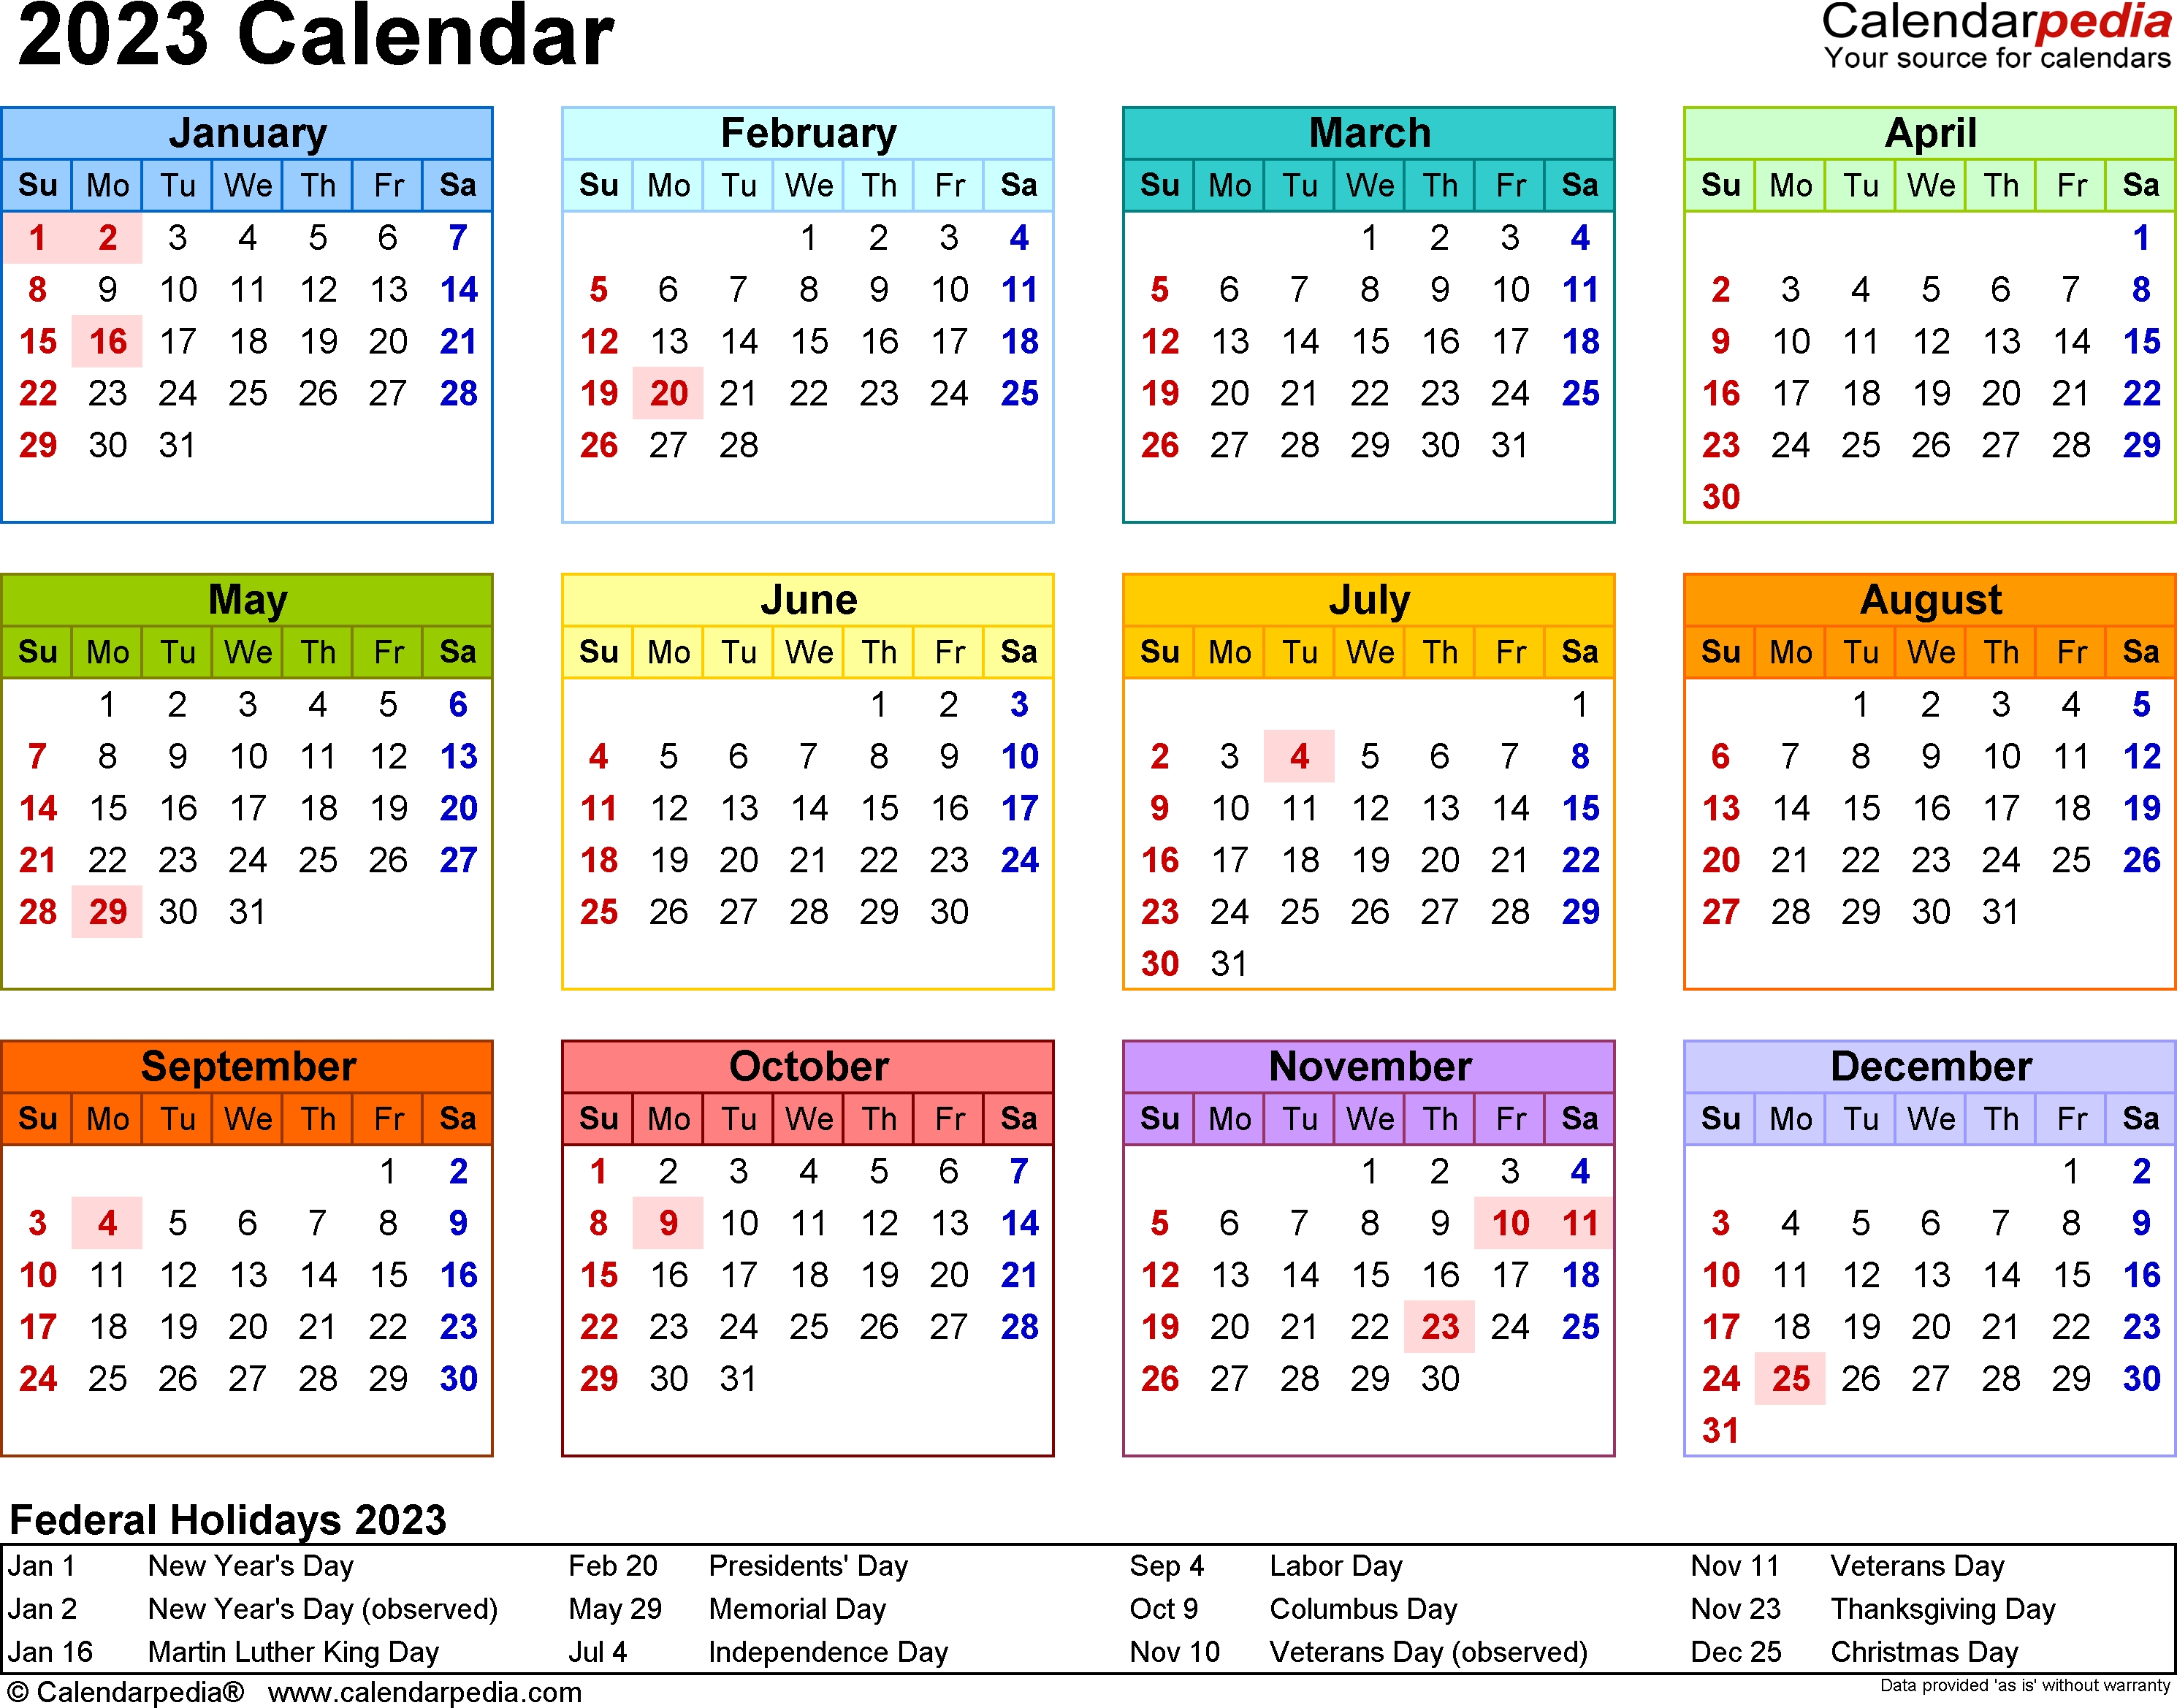 2023 Calendar - Free Printable Templates intended for 1 Page Printable 2023 Calendar